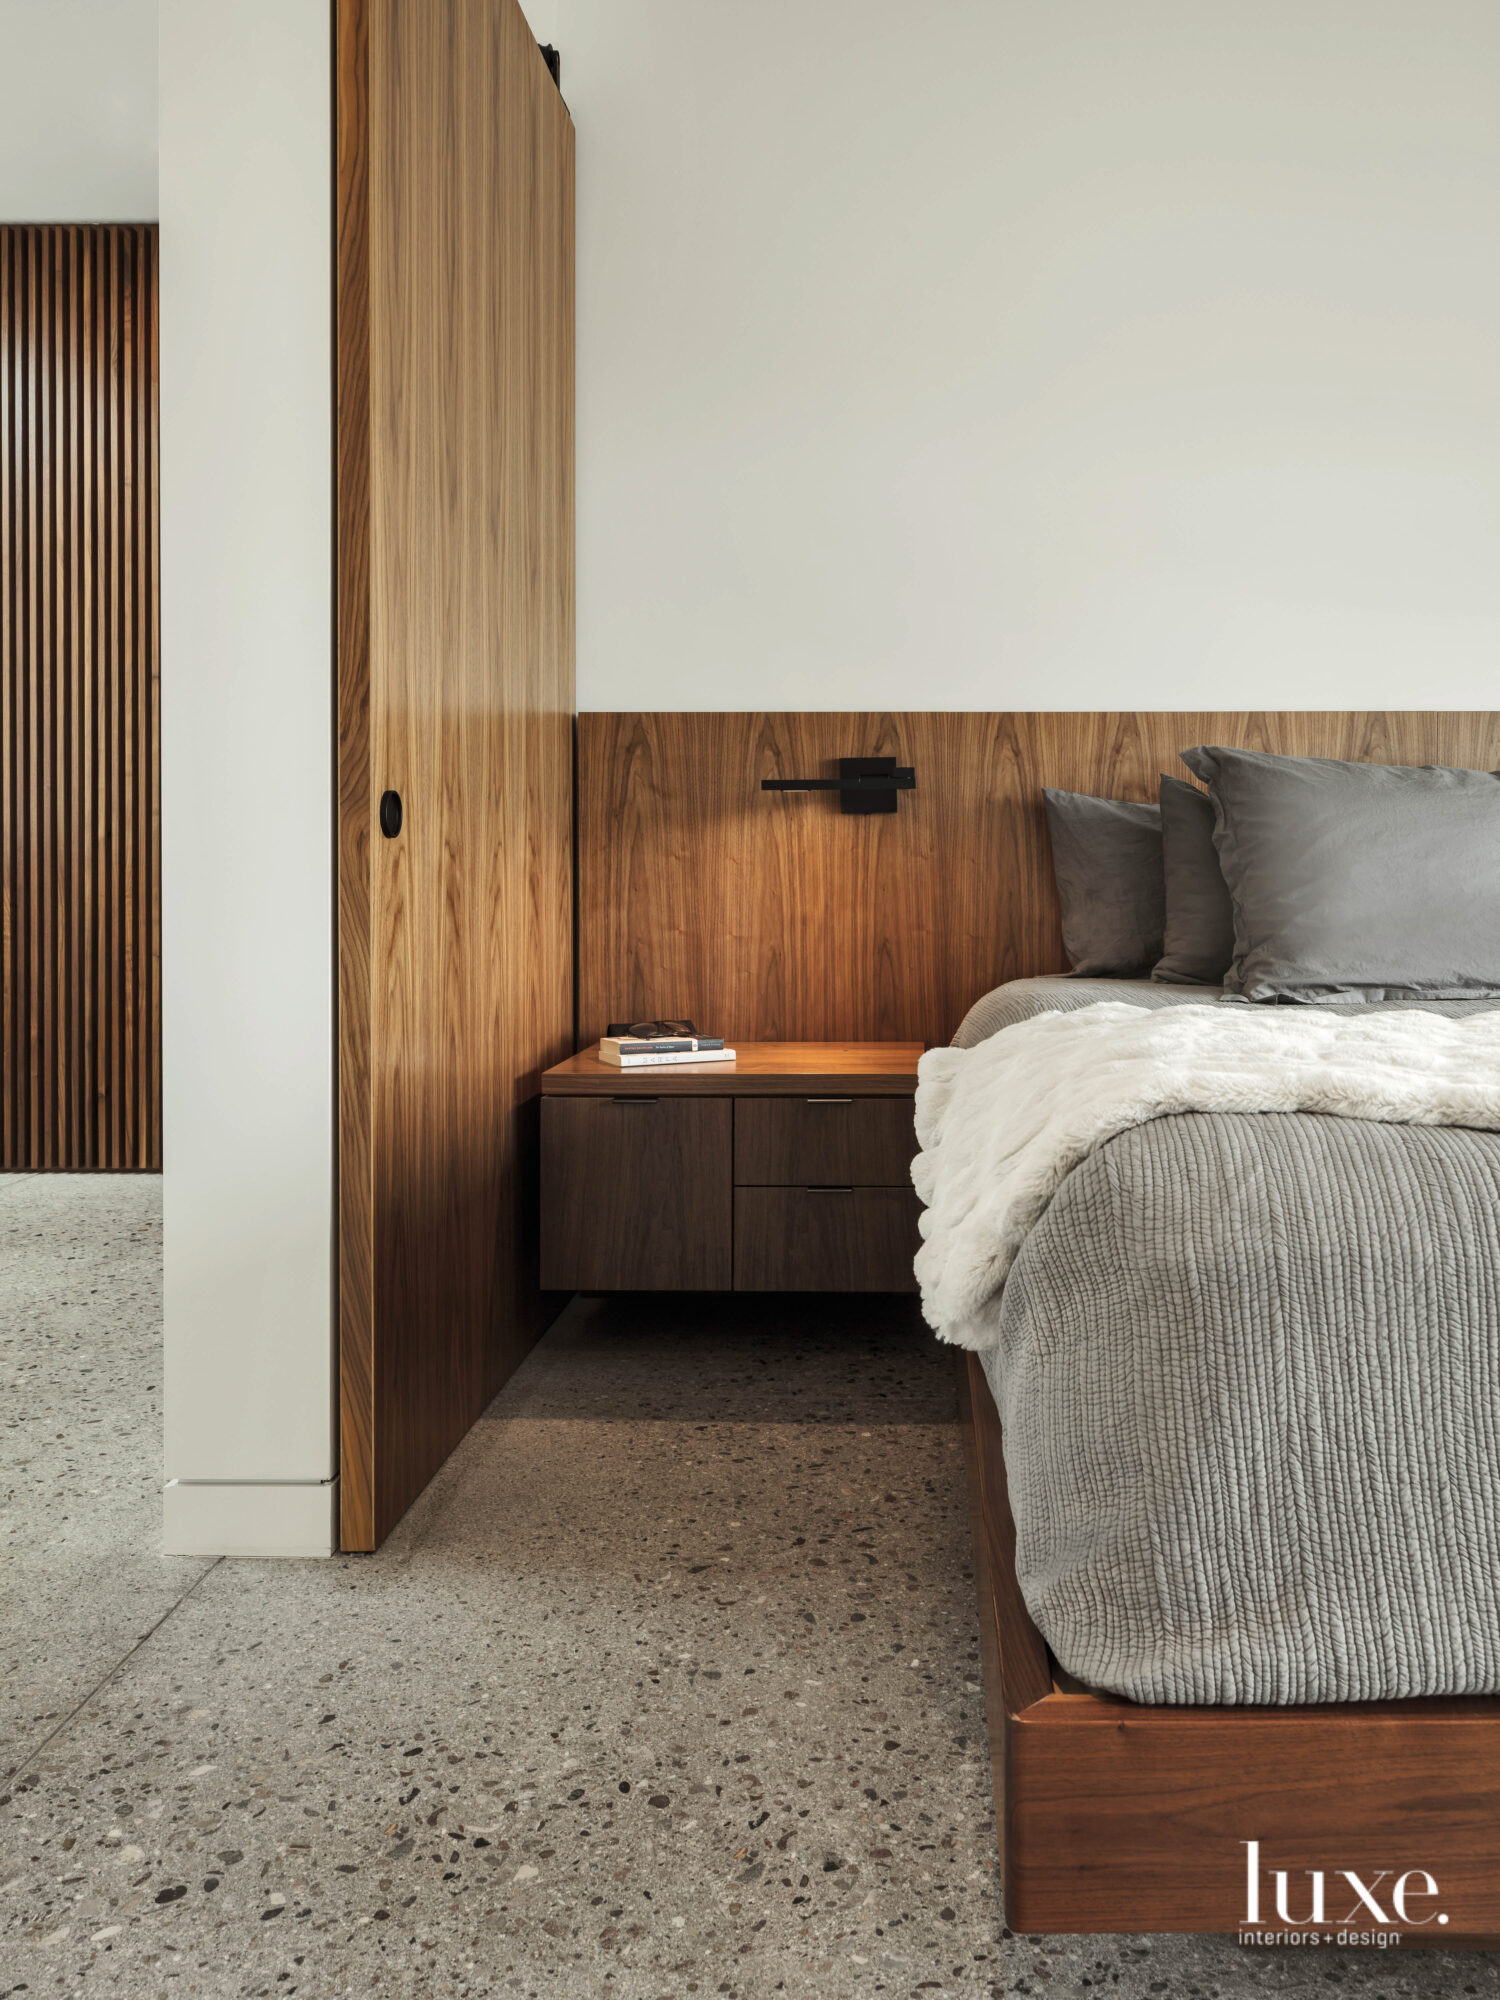 The homeowners' minimalist bedroom centers...